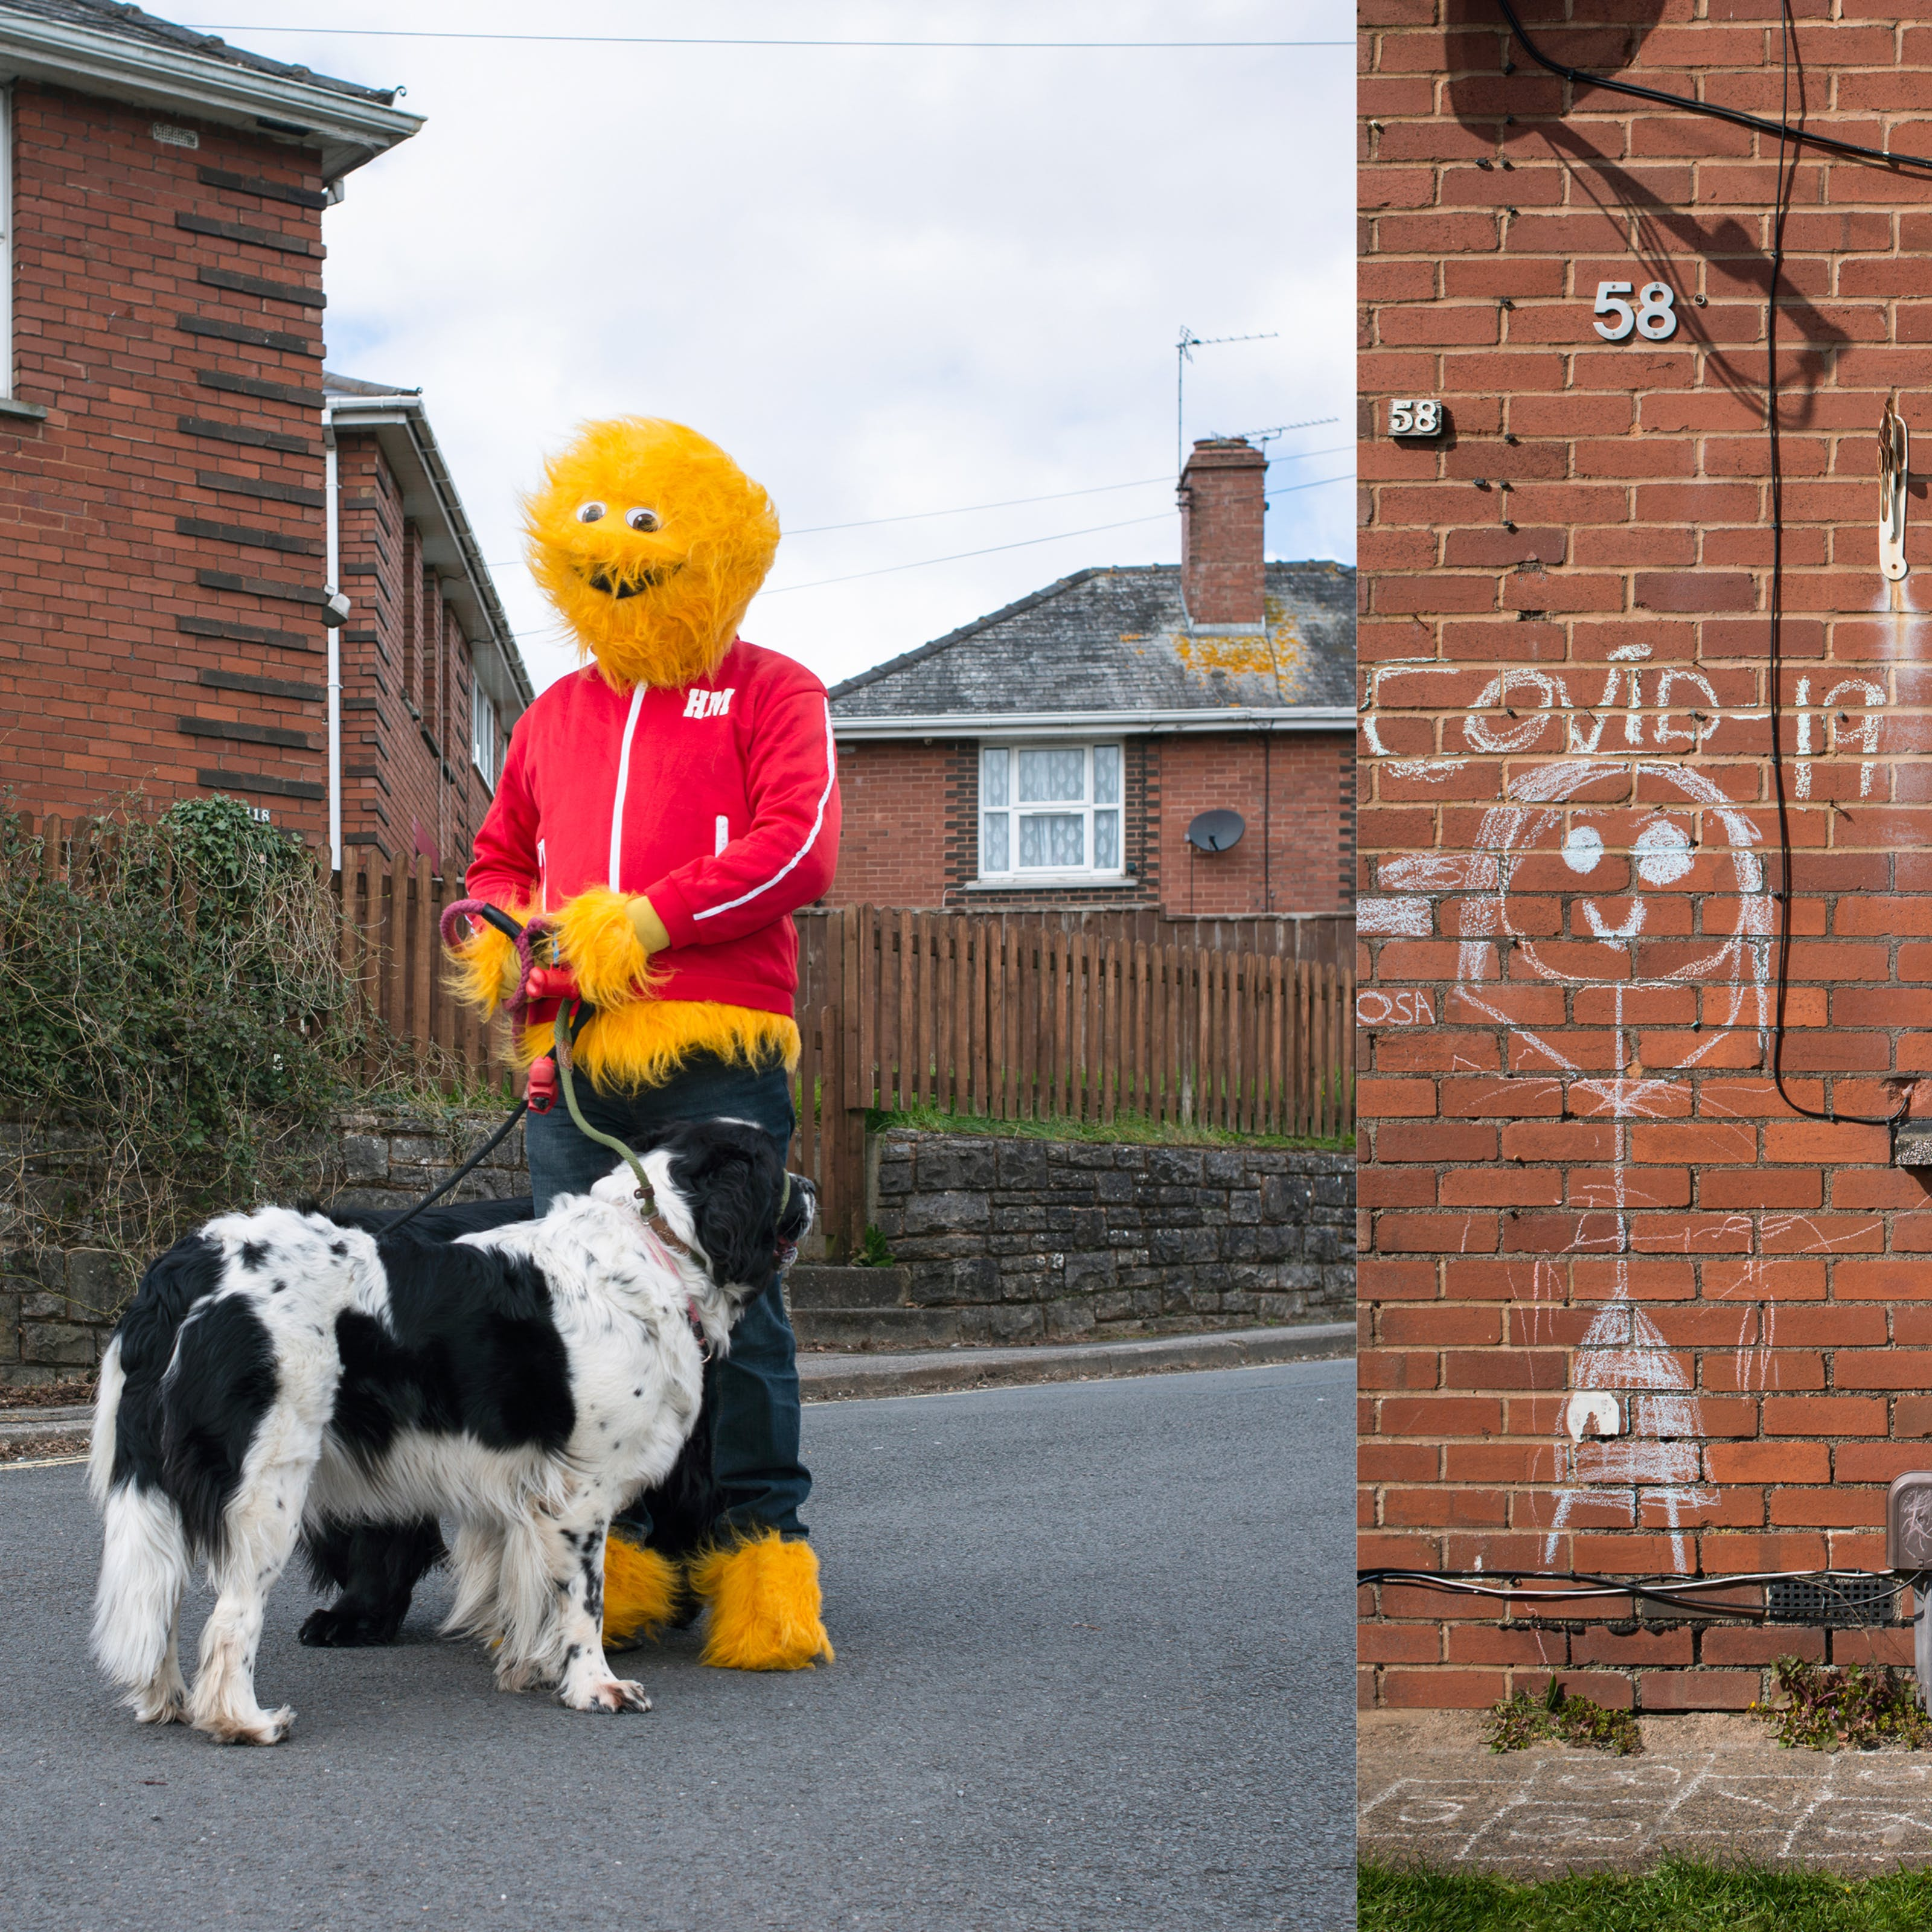 A photographic diptych. The image on the left shows an adult wearing a furry yellow Honey Monster costume, including a red tracksuit top and blue tracksuit bottoms standing in a residential road with red brick houses beyond. The Honey Monster is holding a large black and white dog facing away from camera. The image on the right shows a section of the ground floor of a red brick house with a white PVC door and window with net curtains. On the brick wall surrounding the window there is a large chalk drawing of a stick person with Covid-19 written above it. Beneath the window is written 'stay home'.